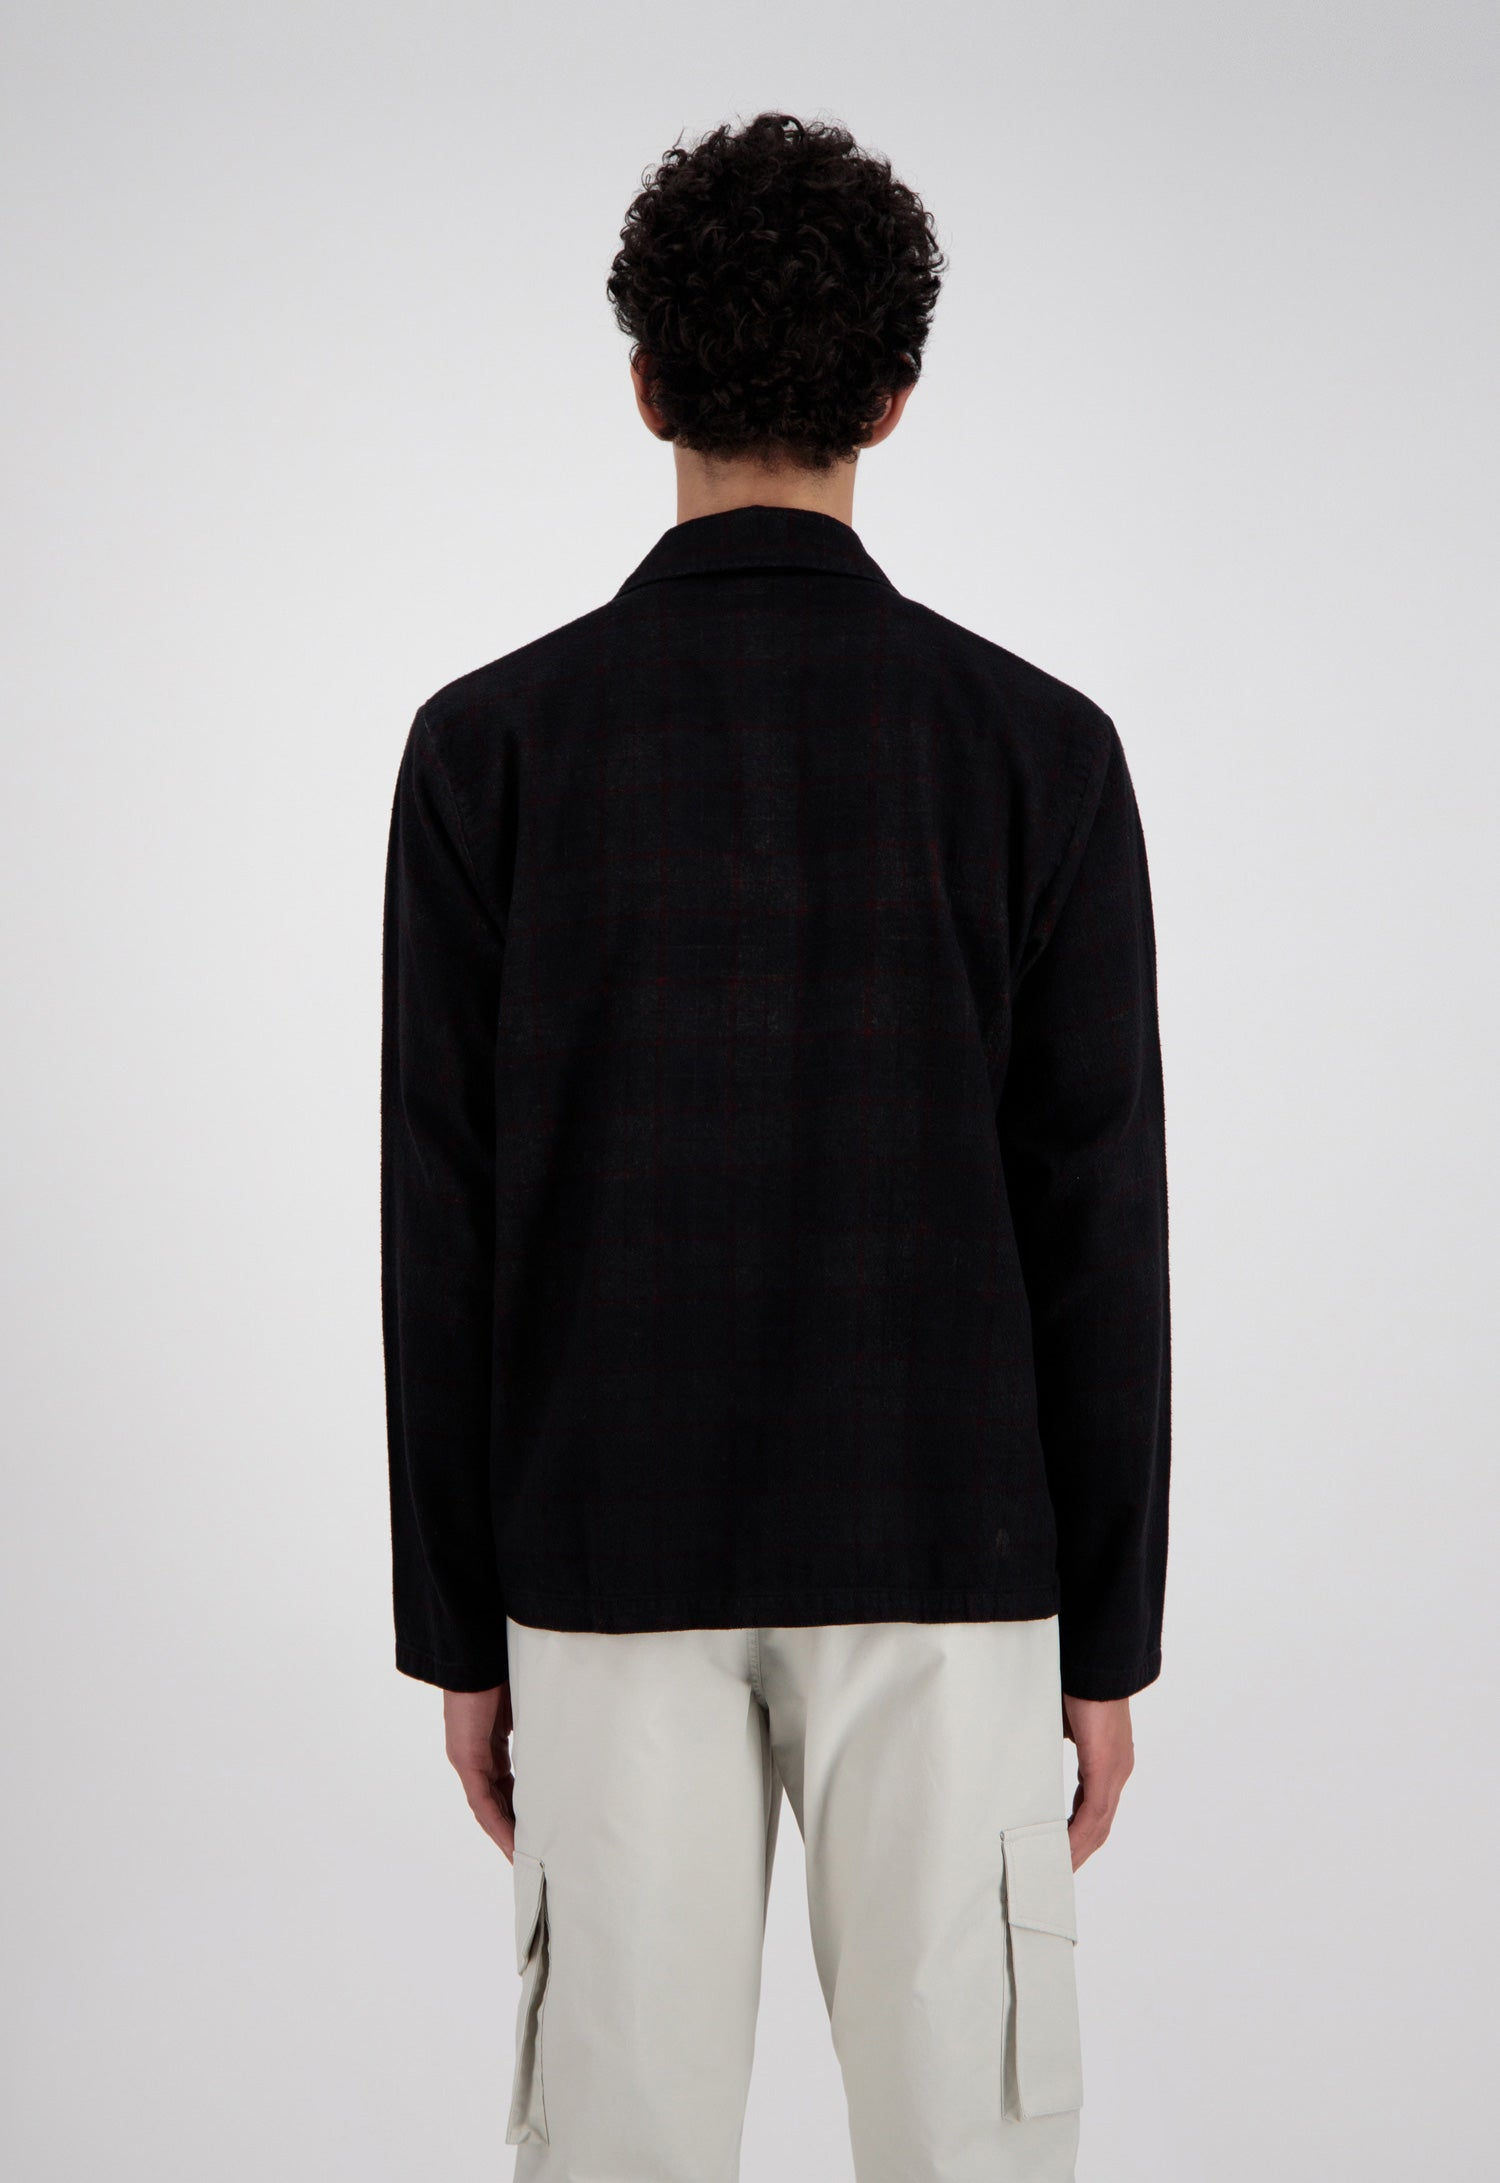 ØLÅF Overdye Check Shirt <br>Black